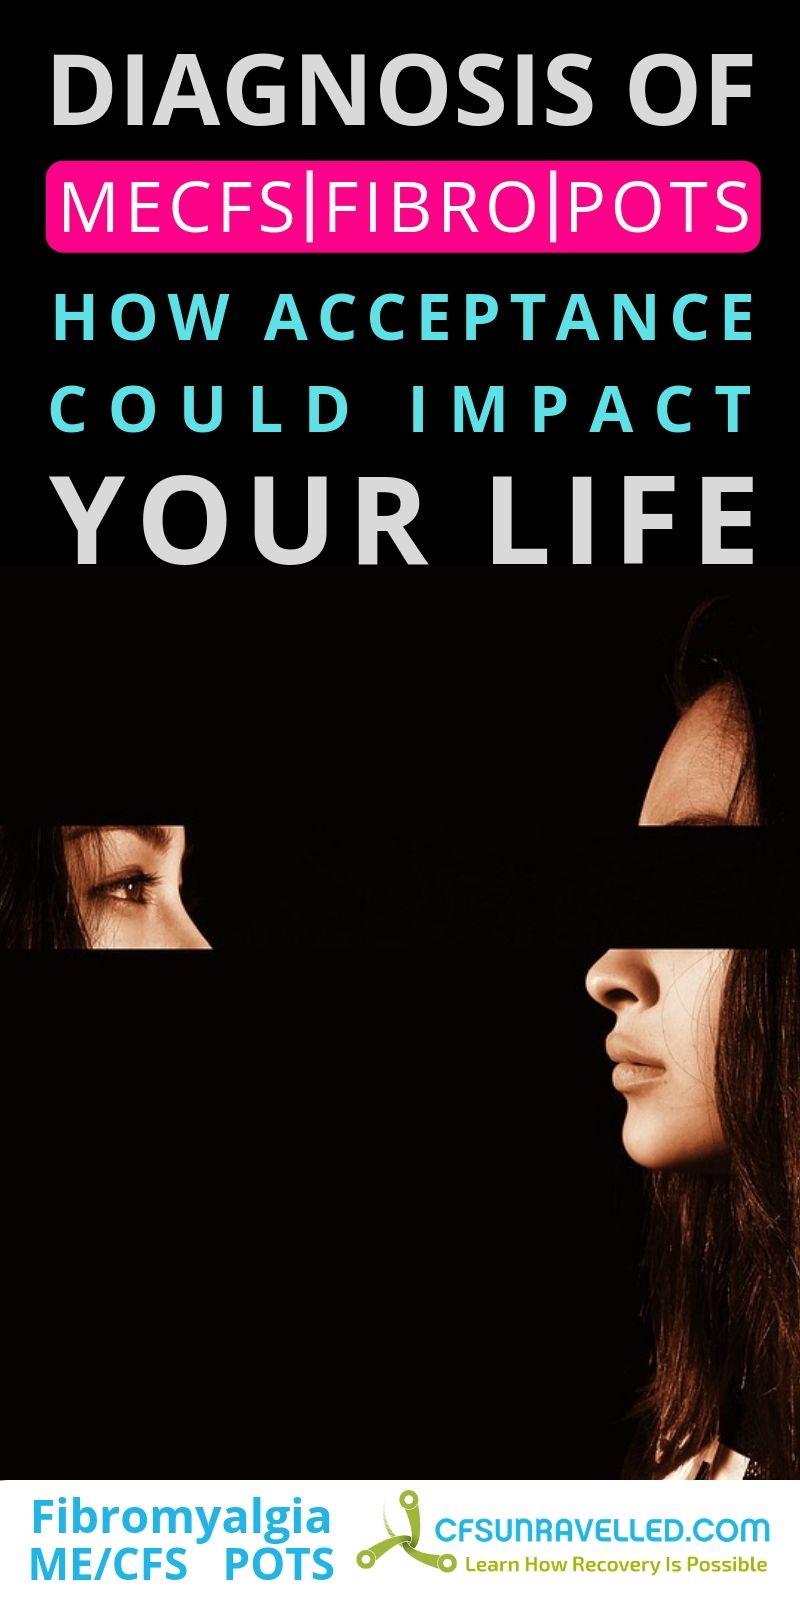 poster about impact on life with yes looking back at own head